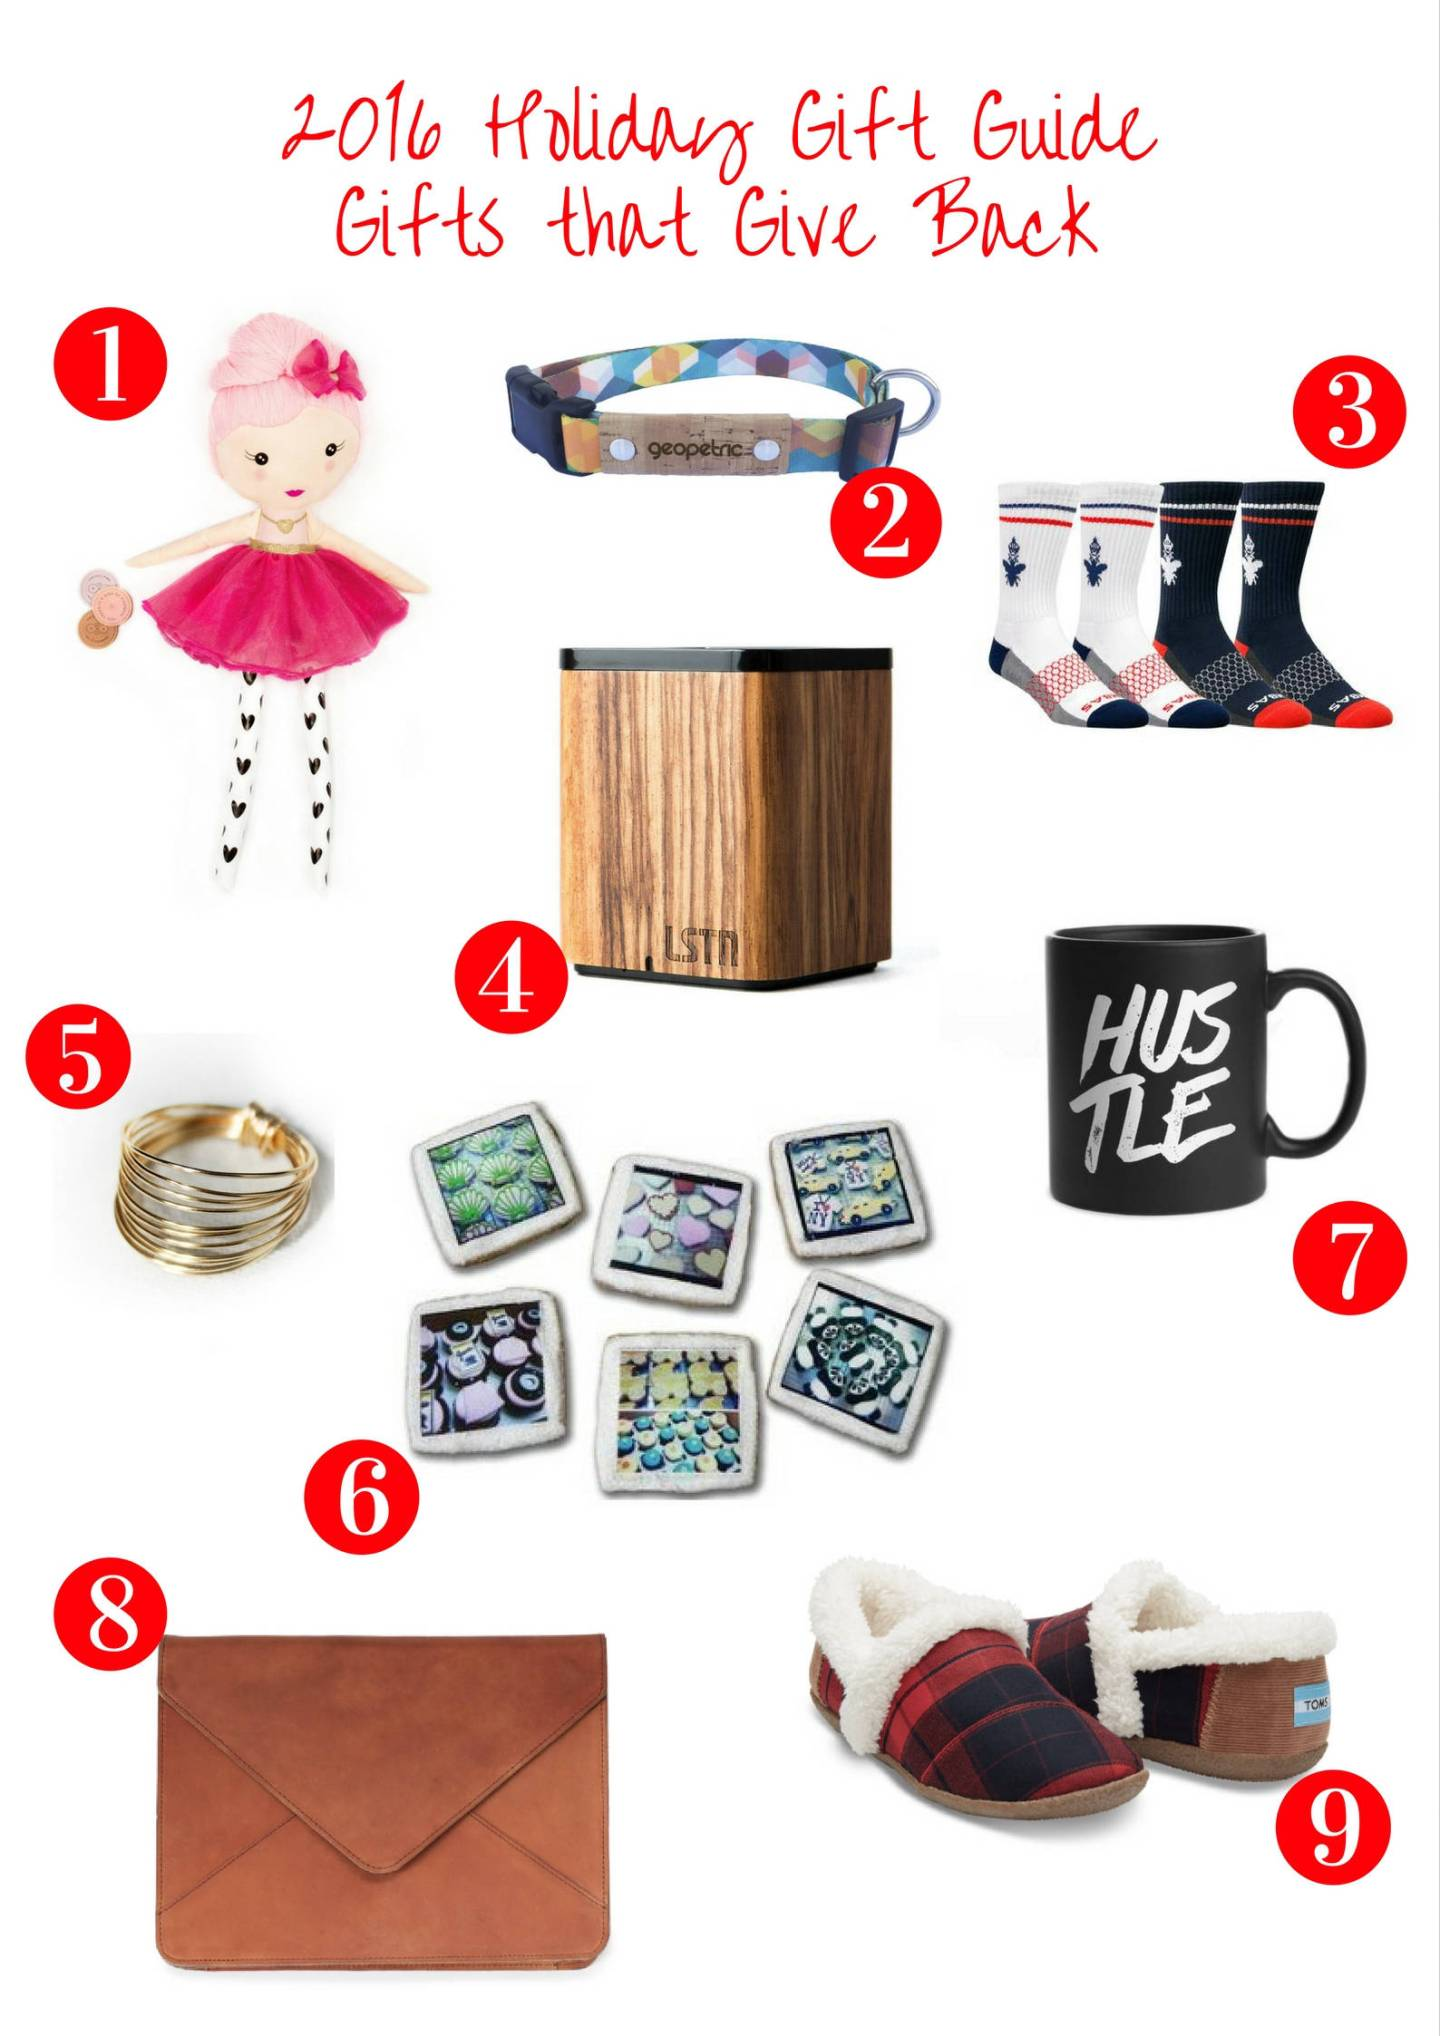 2016_gift_guide-gifts-that-give-back